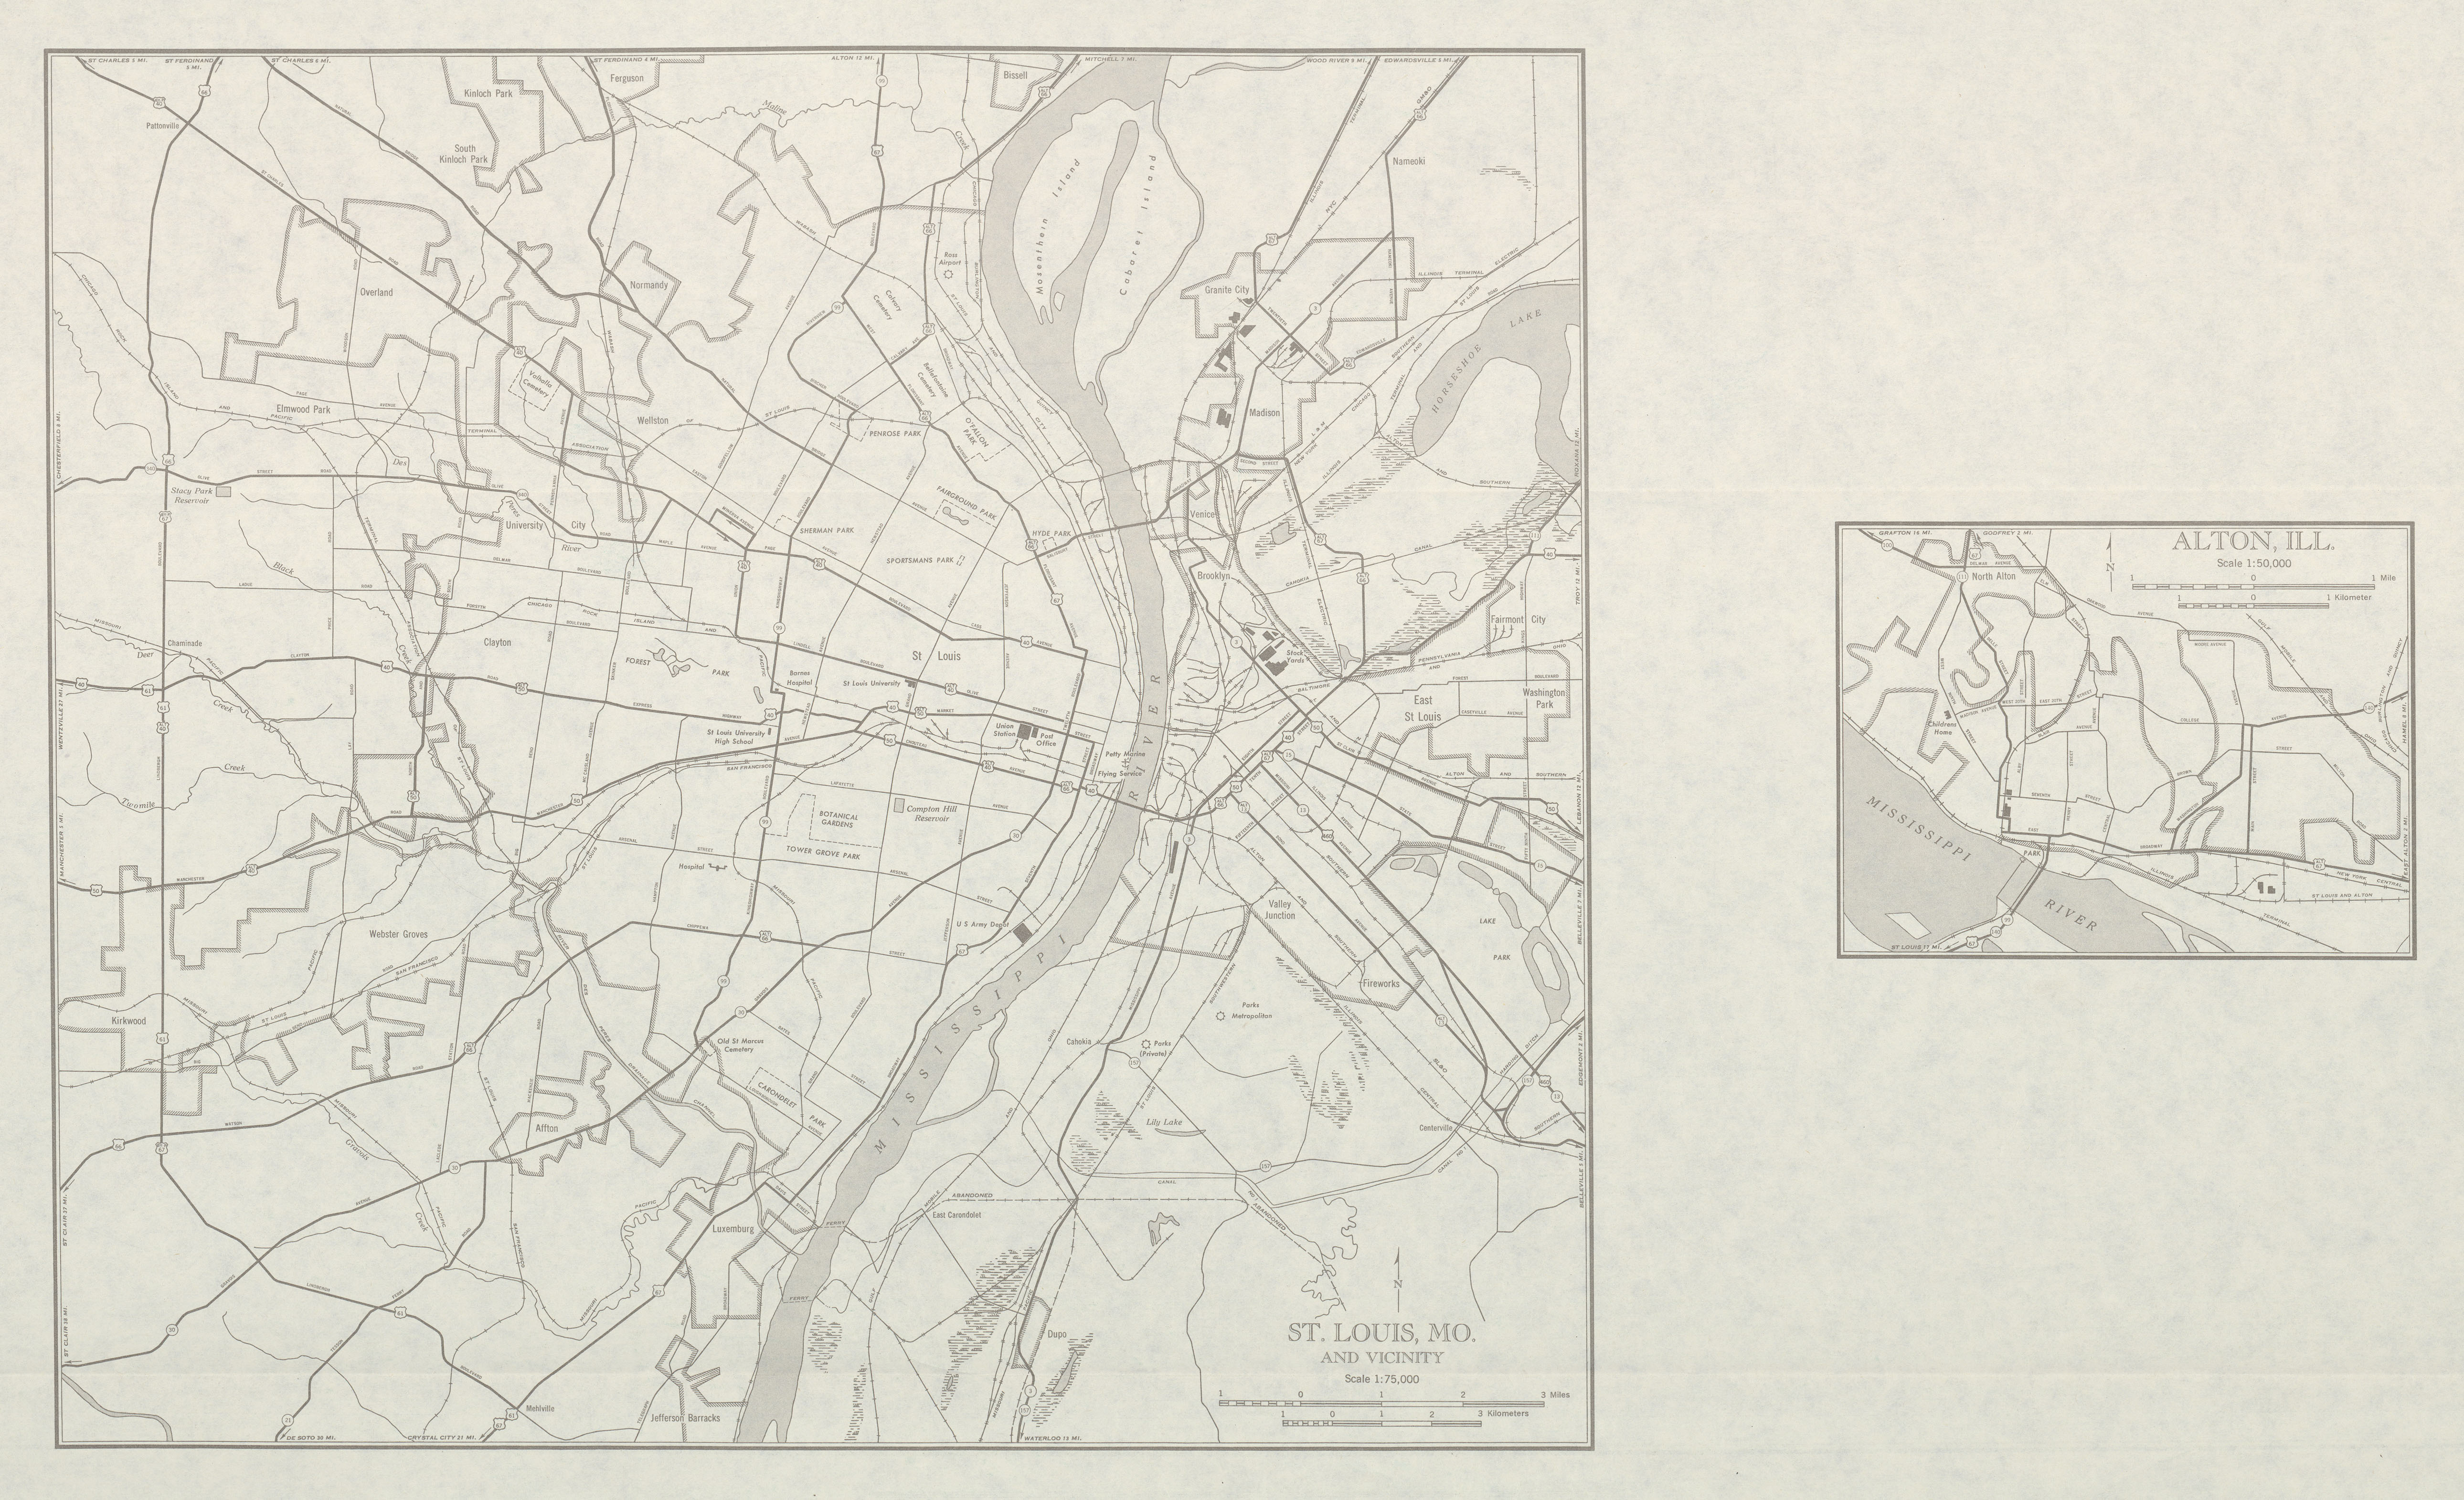 Maps Us Map St Louis - Topographical map us of 1804